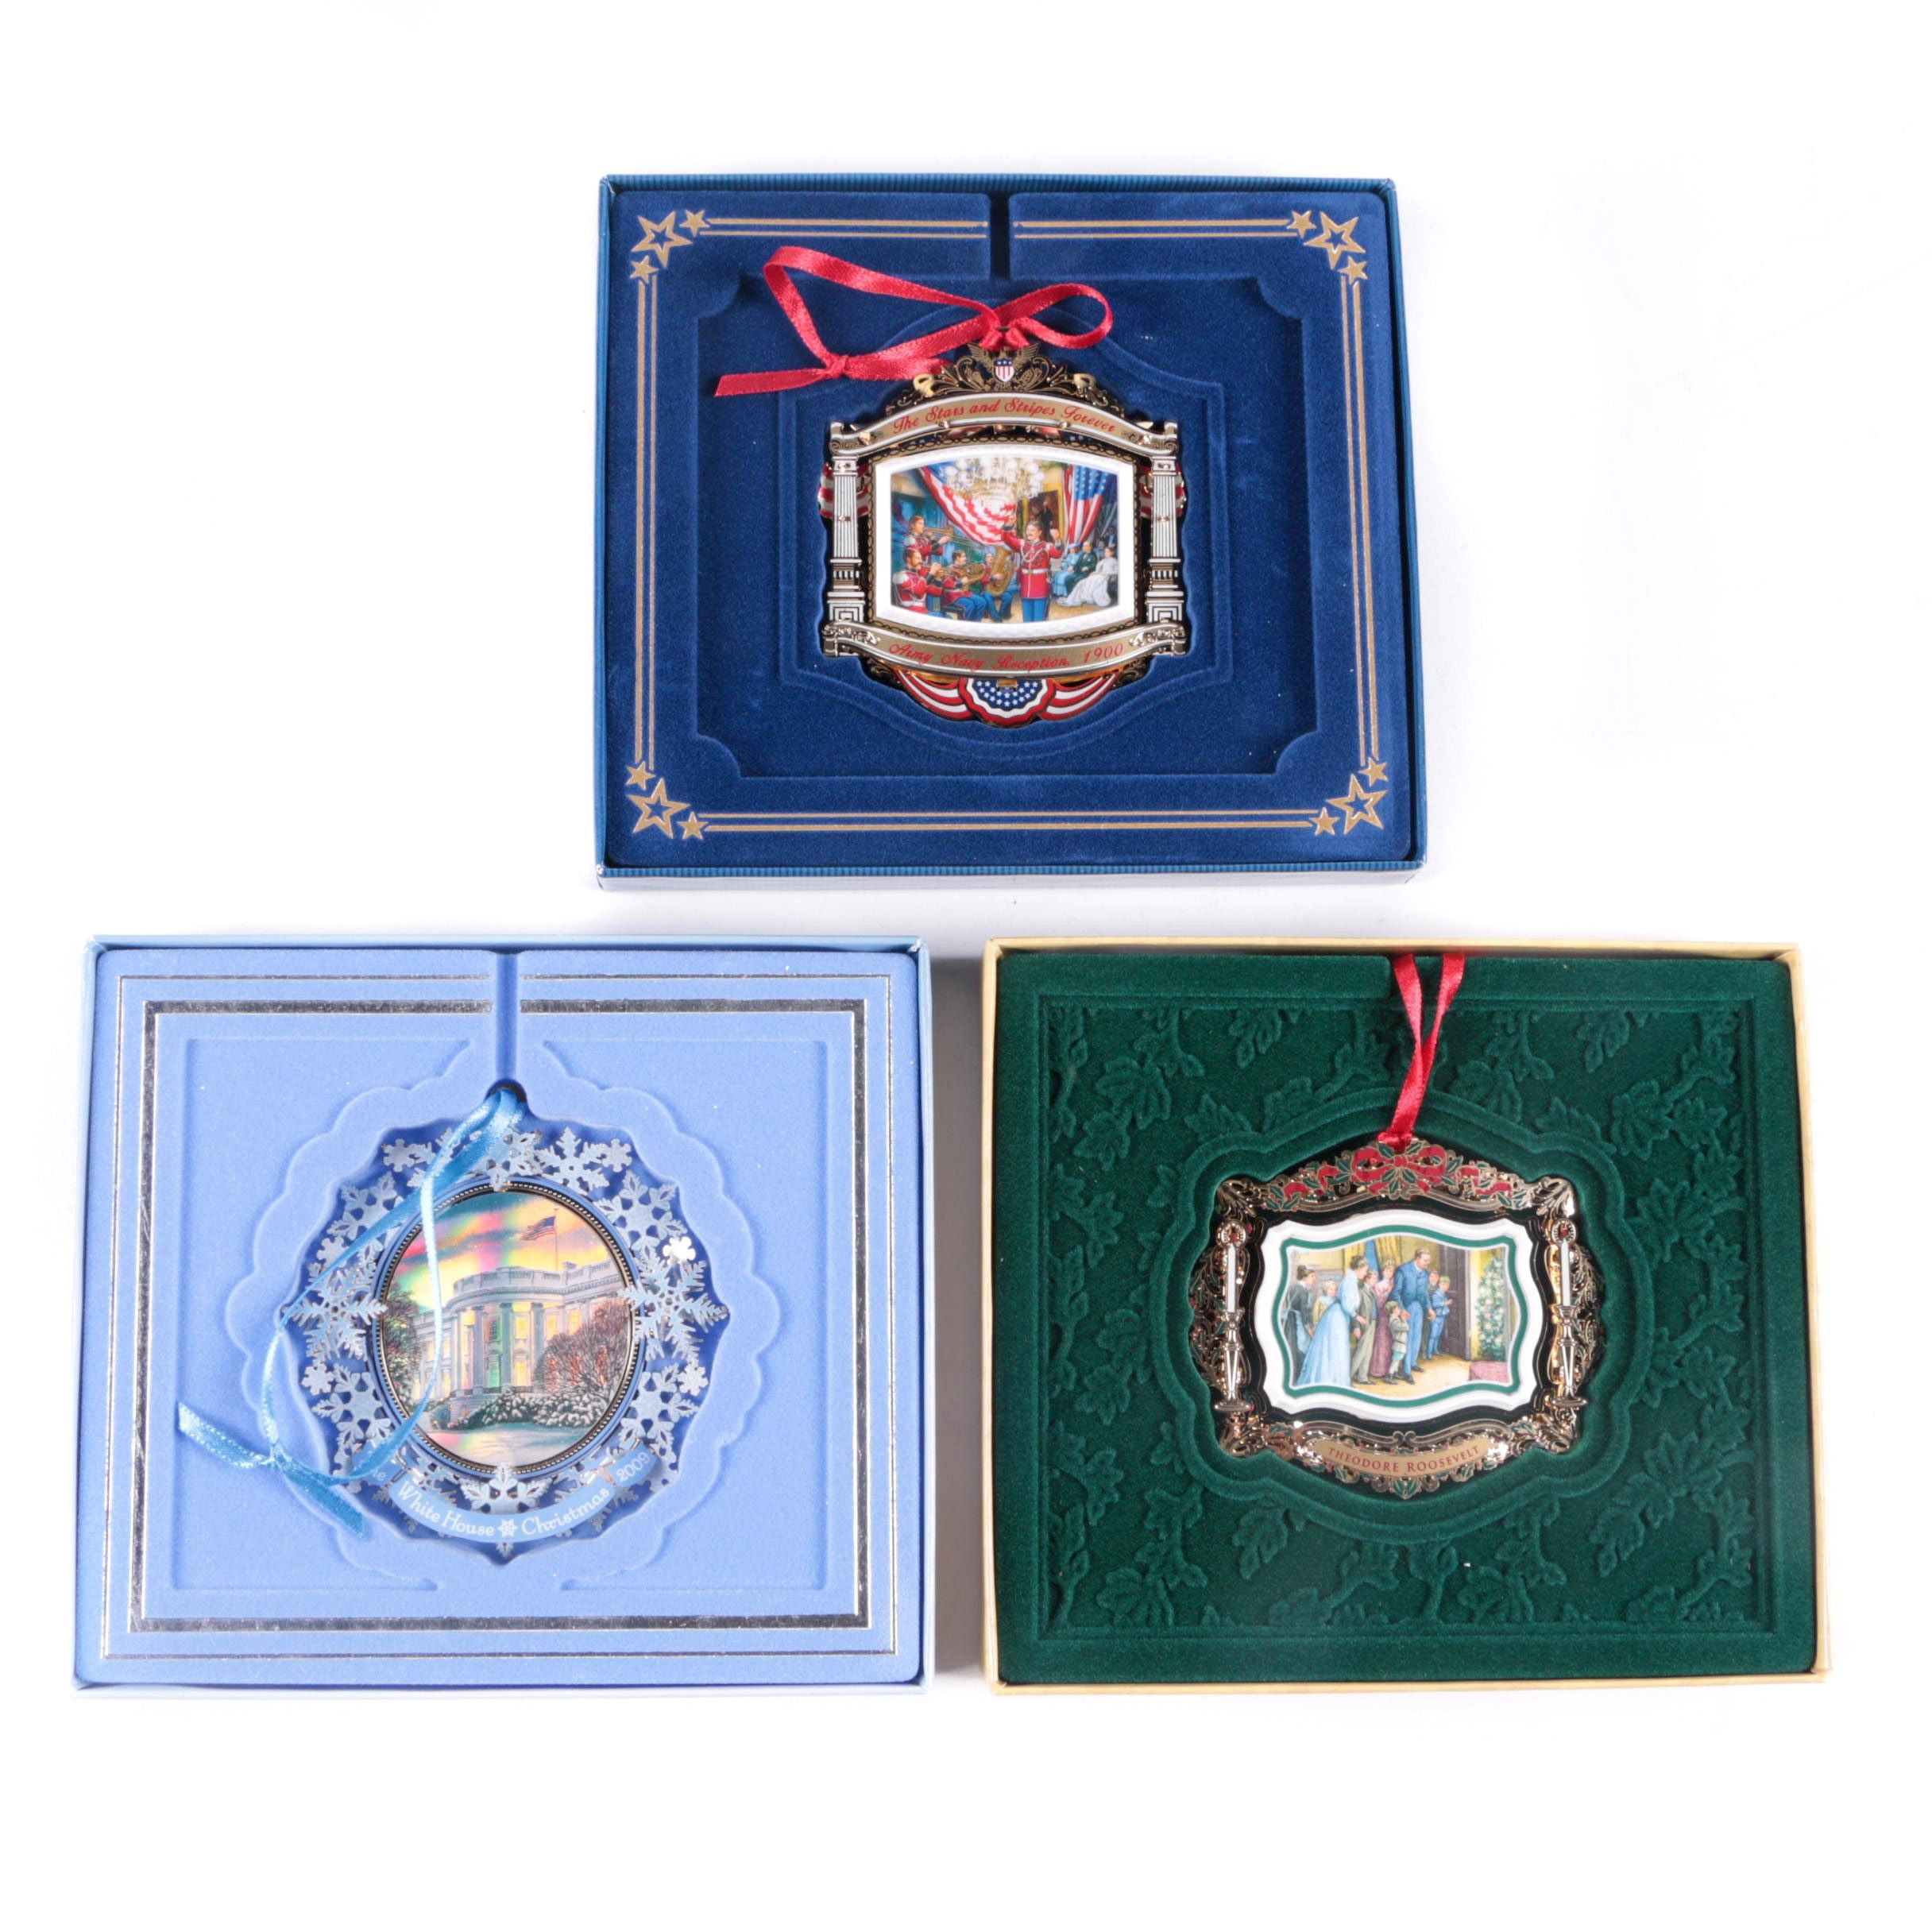 White House Christmas Ornaments From 2009, 2010, And 2011 ...